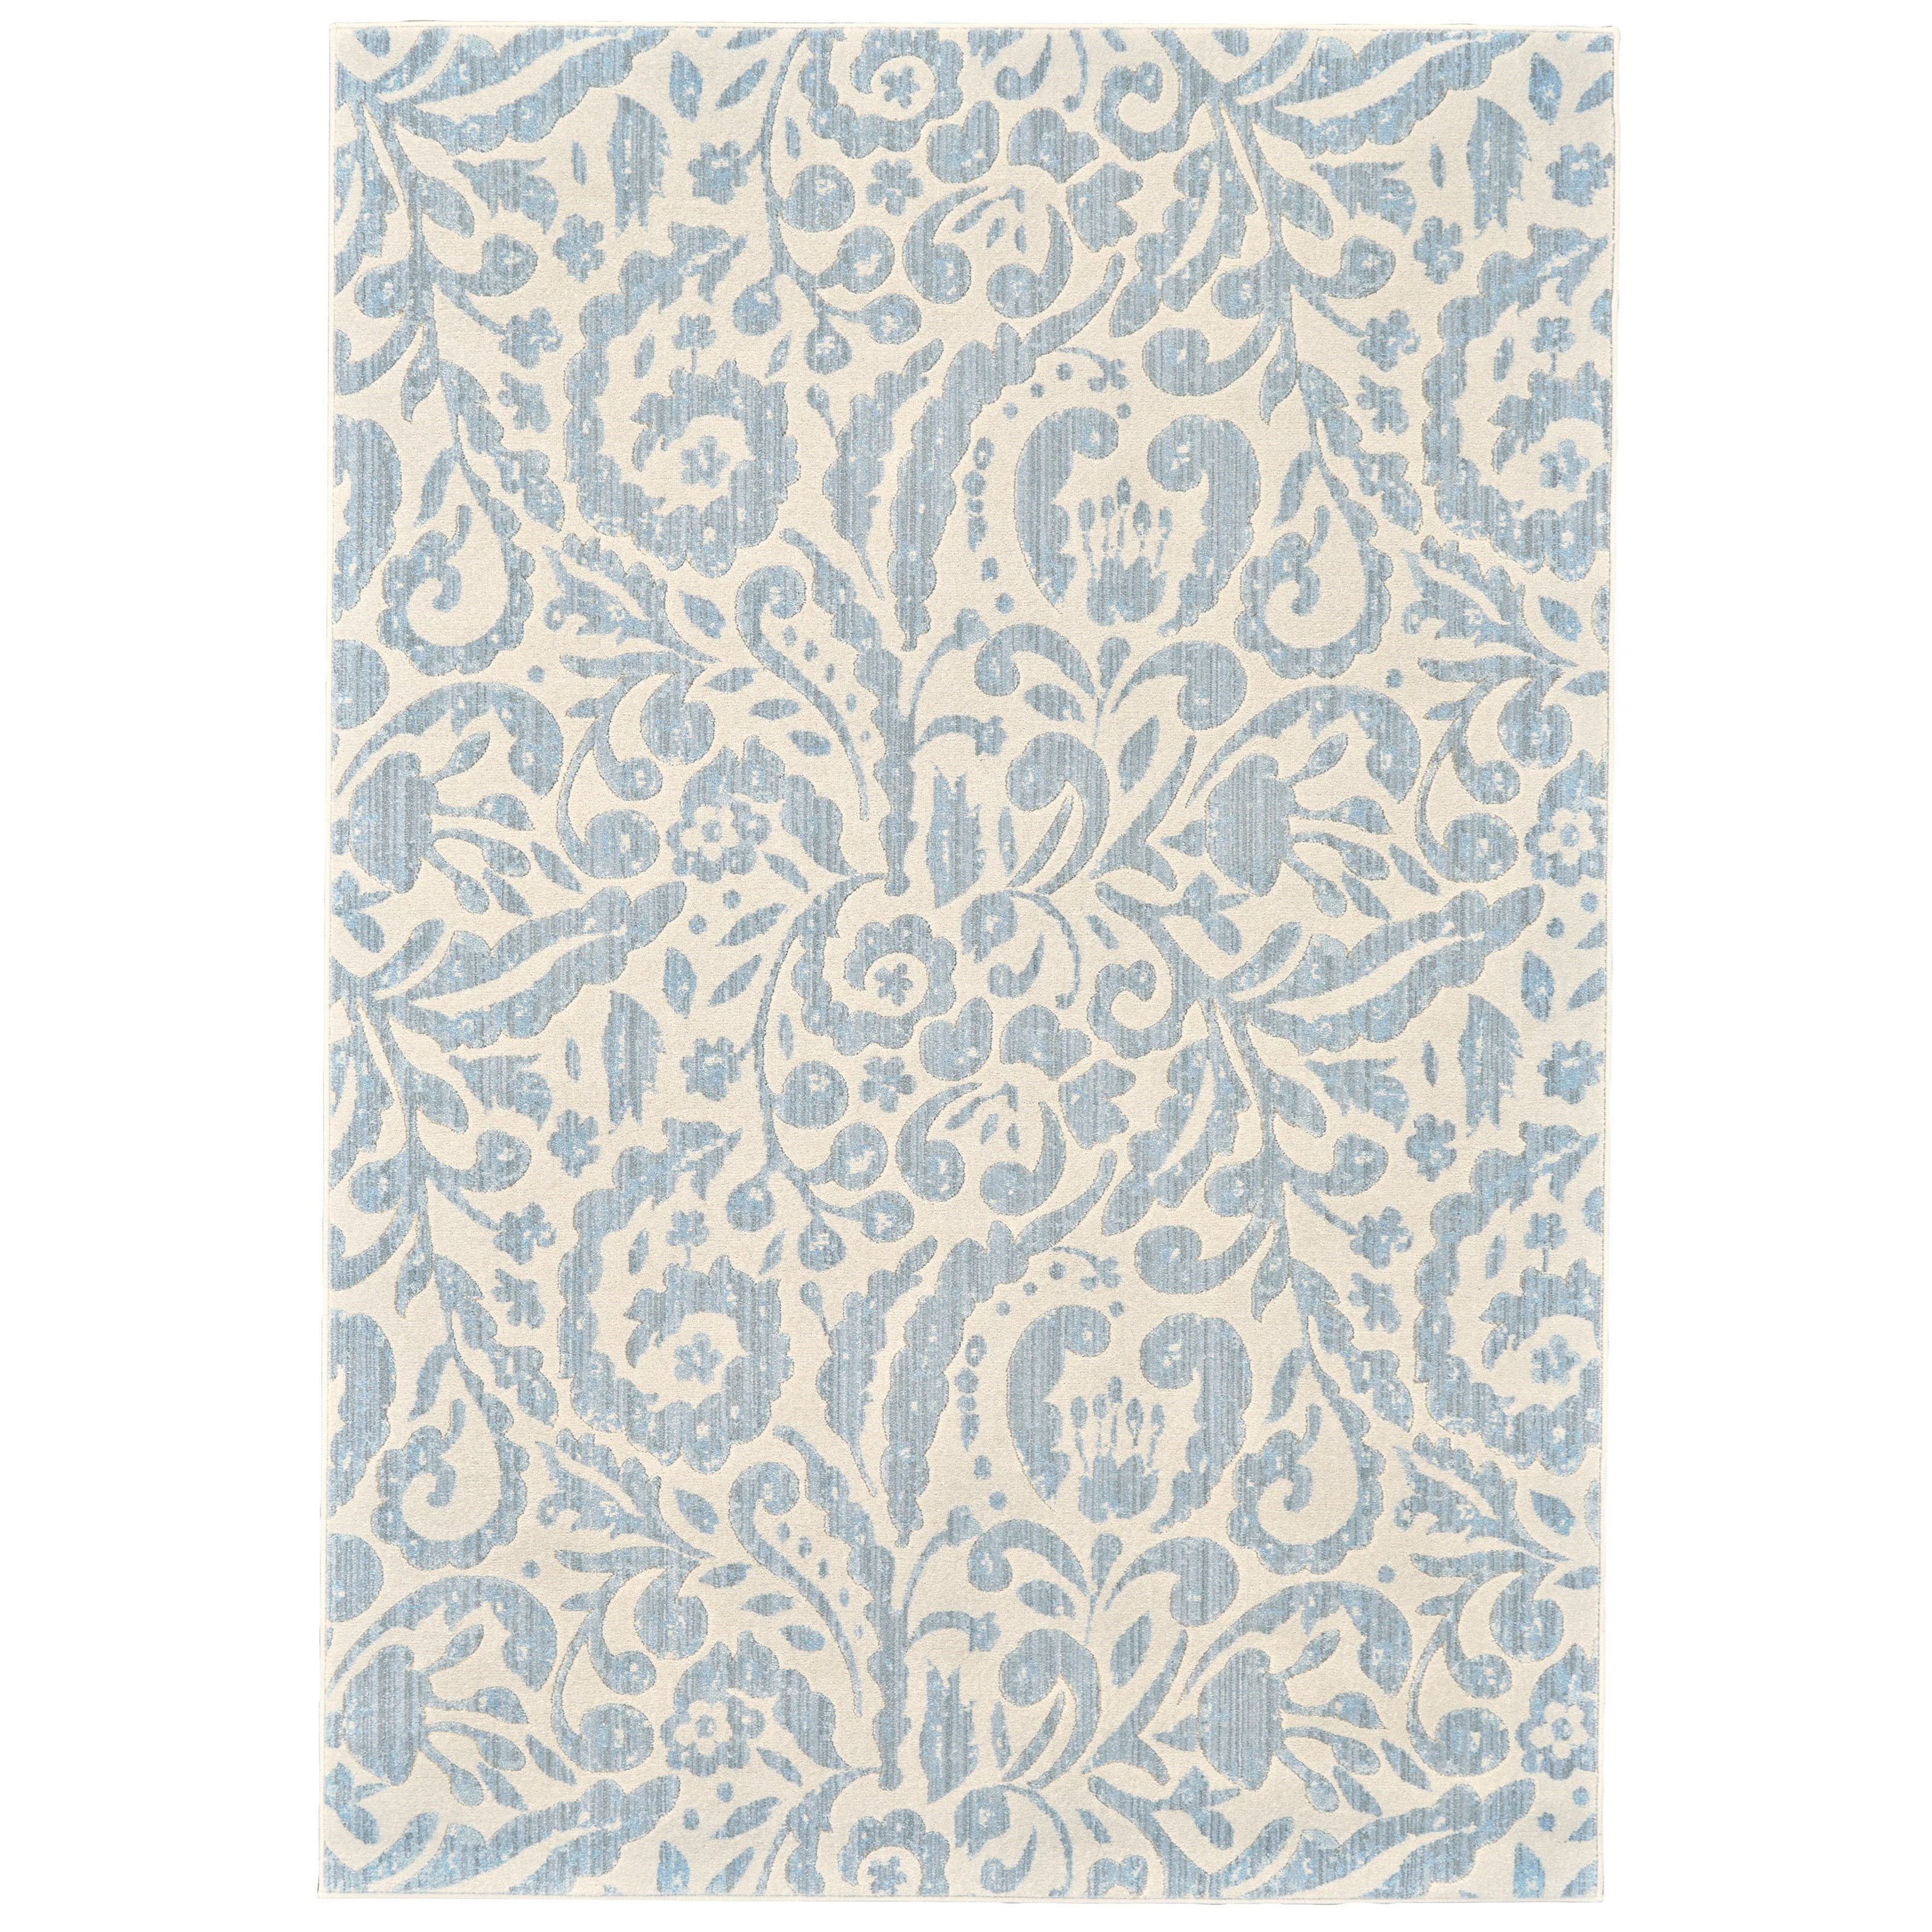 "Milton Mist 7'-10"" x 11' Area Rug by Feizy Rugs at Jacksonville Furniture Mart"